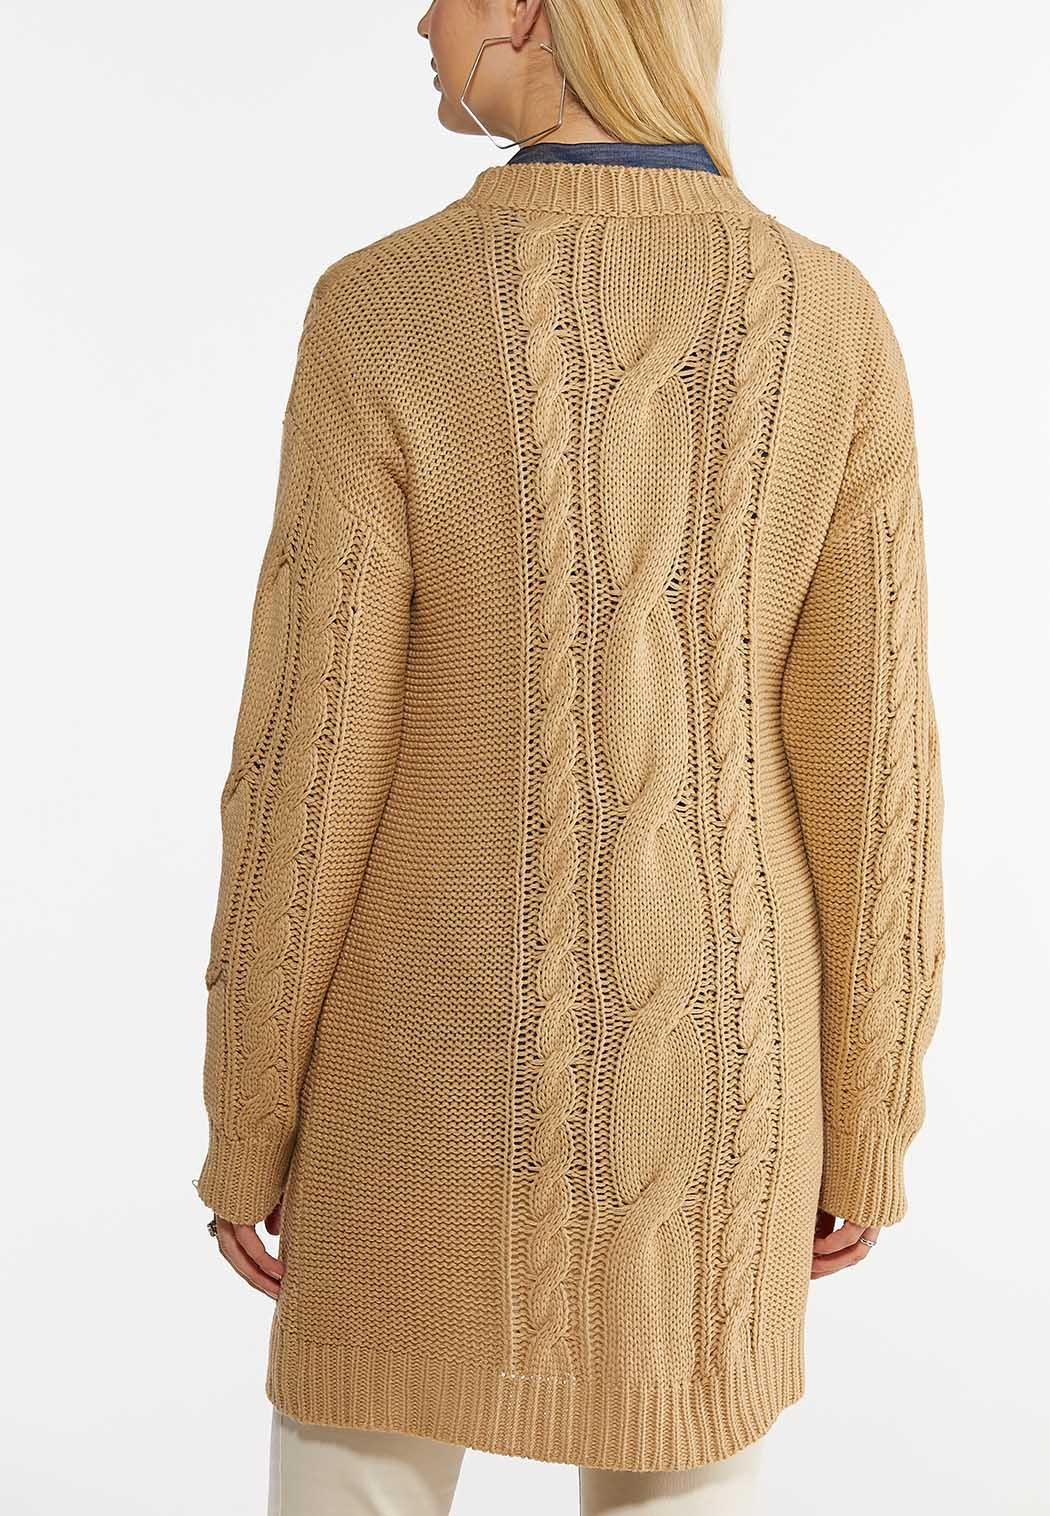 Relaxed Cable Knit Cardigan Sweater (Item #44469401)